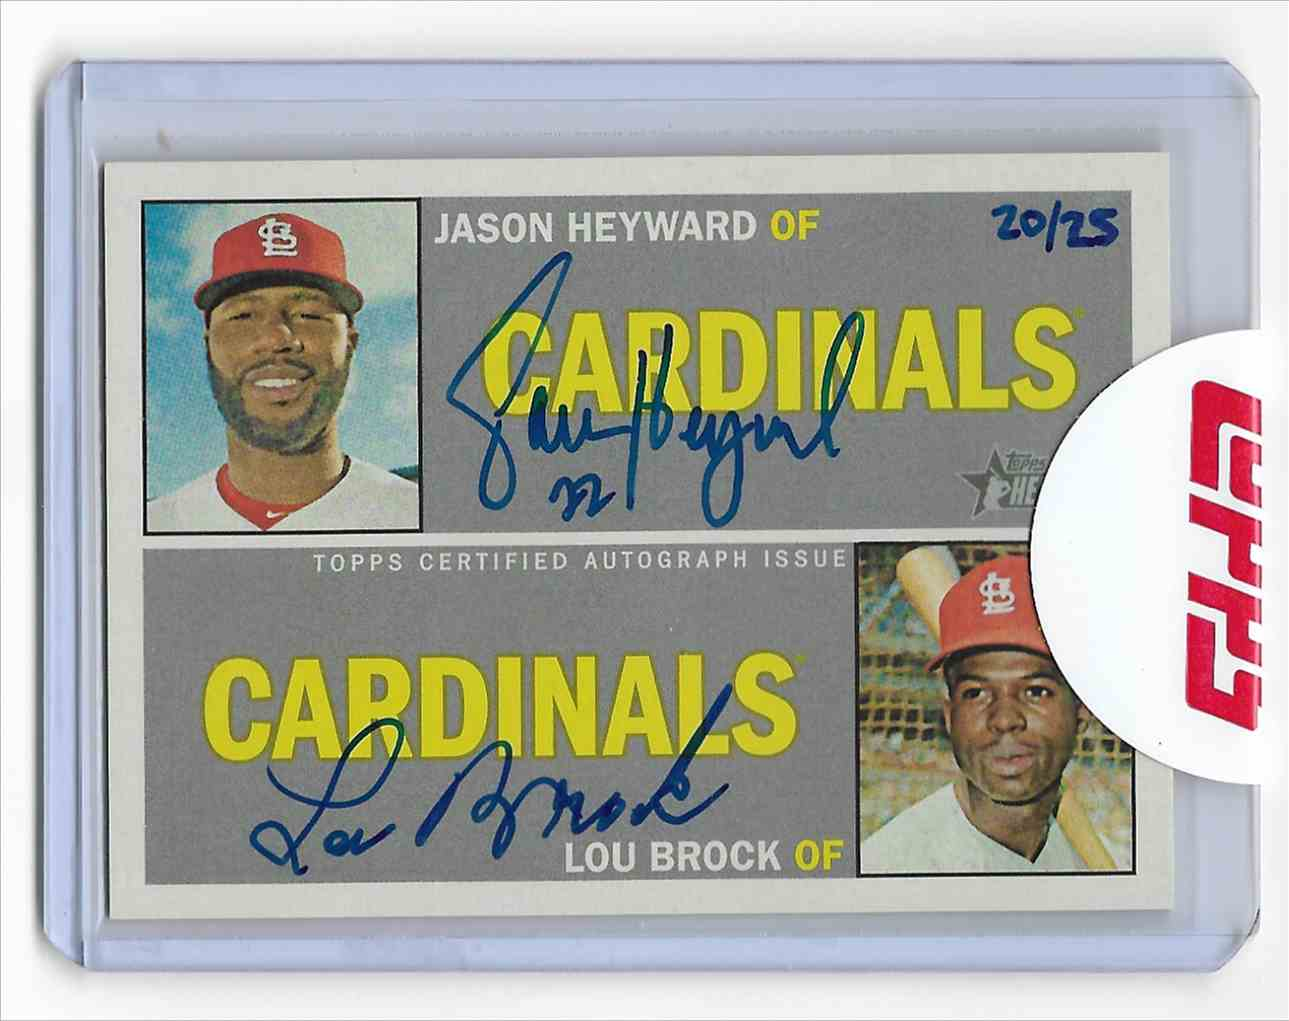 2016 Topps Heritage Real One Autographs Dual Heyward/Brock #HB card front image